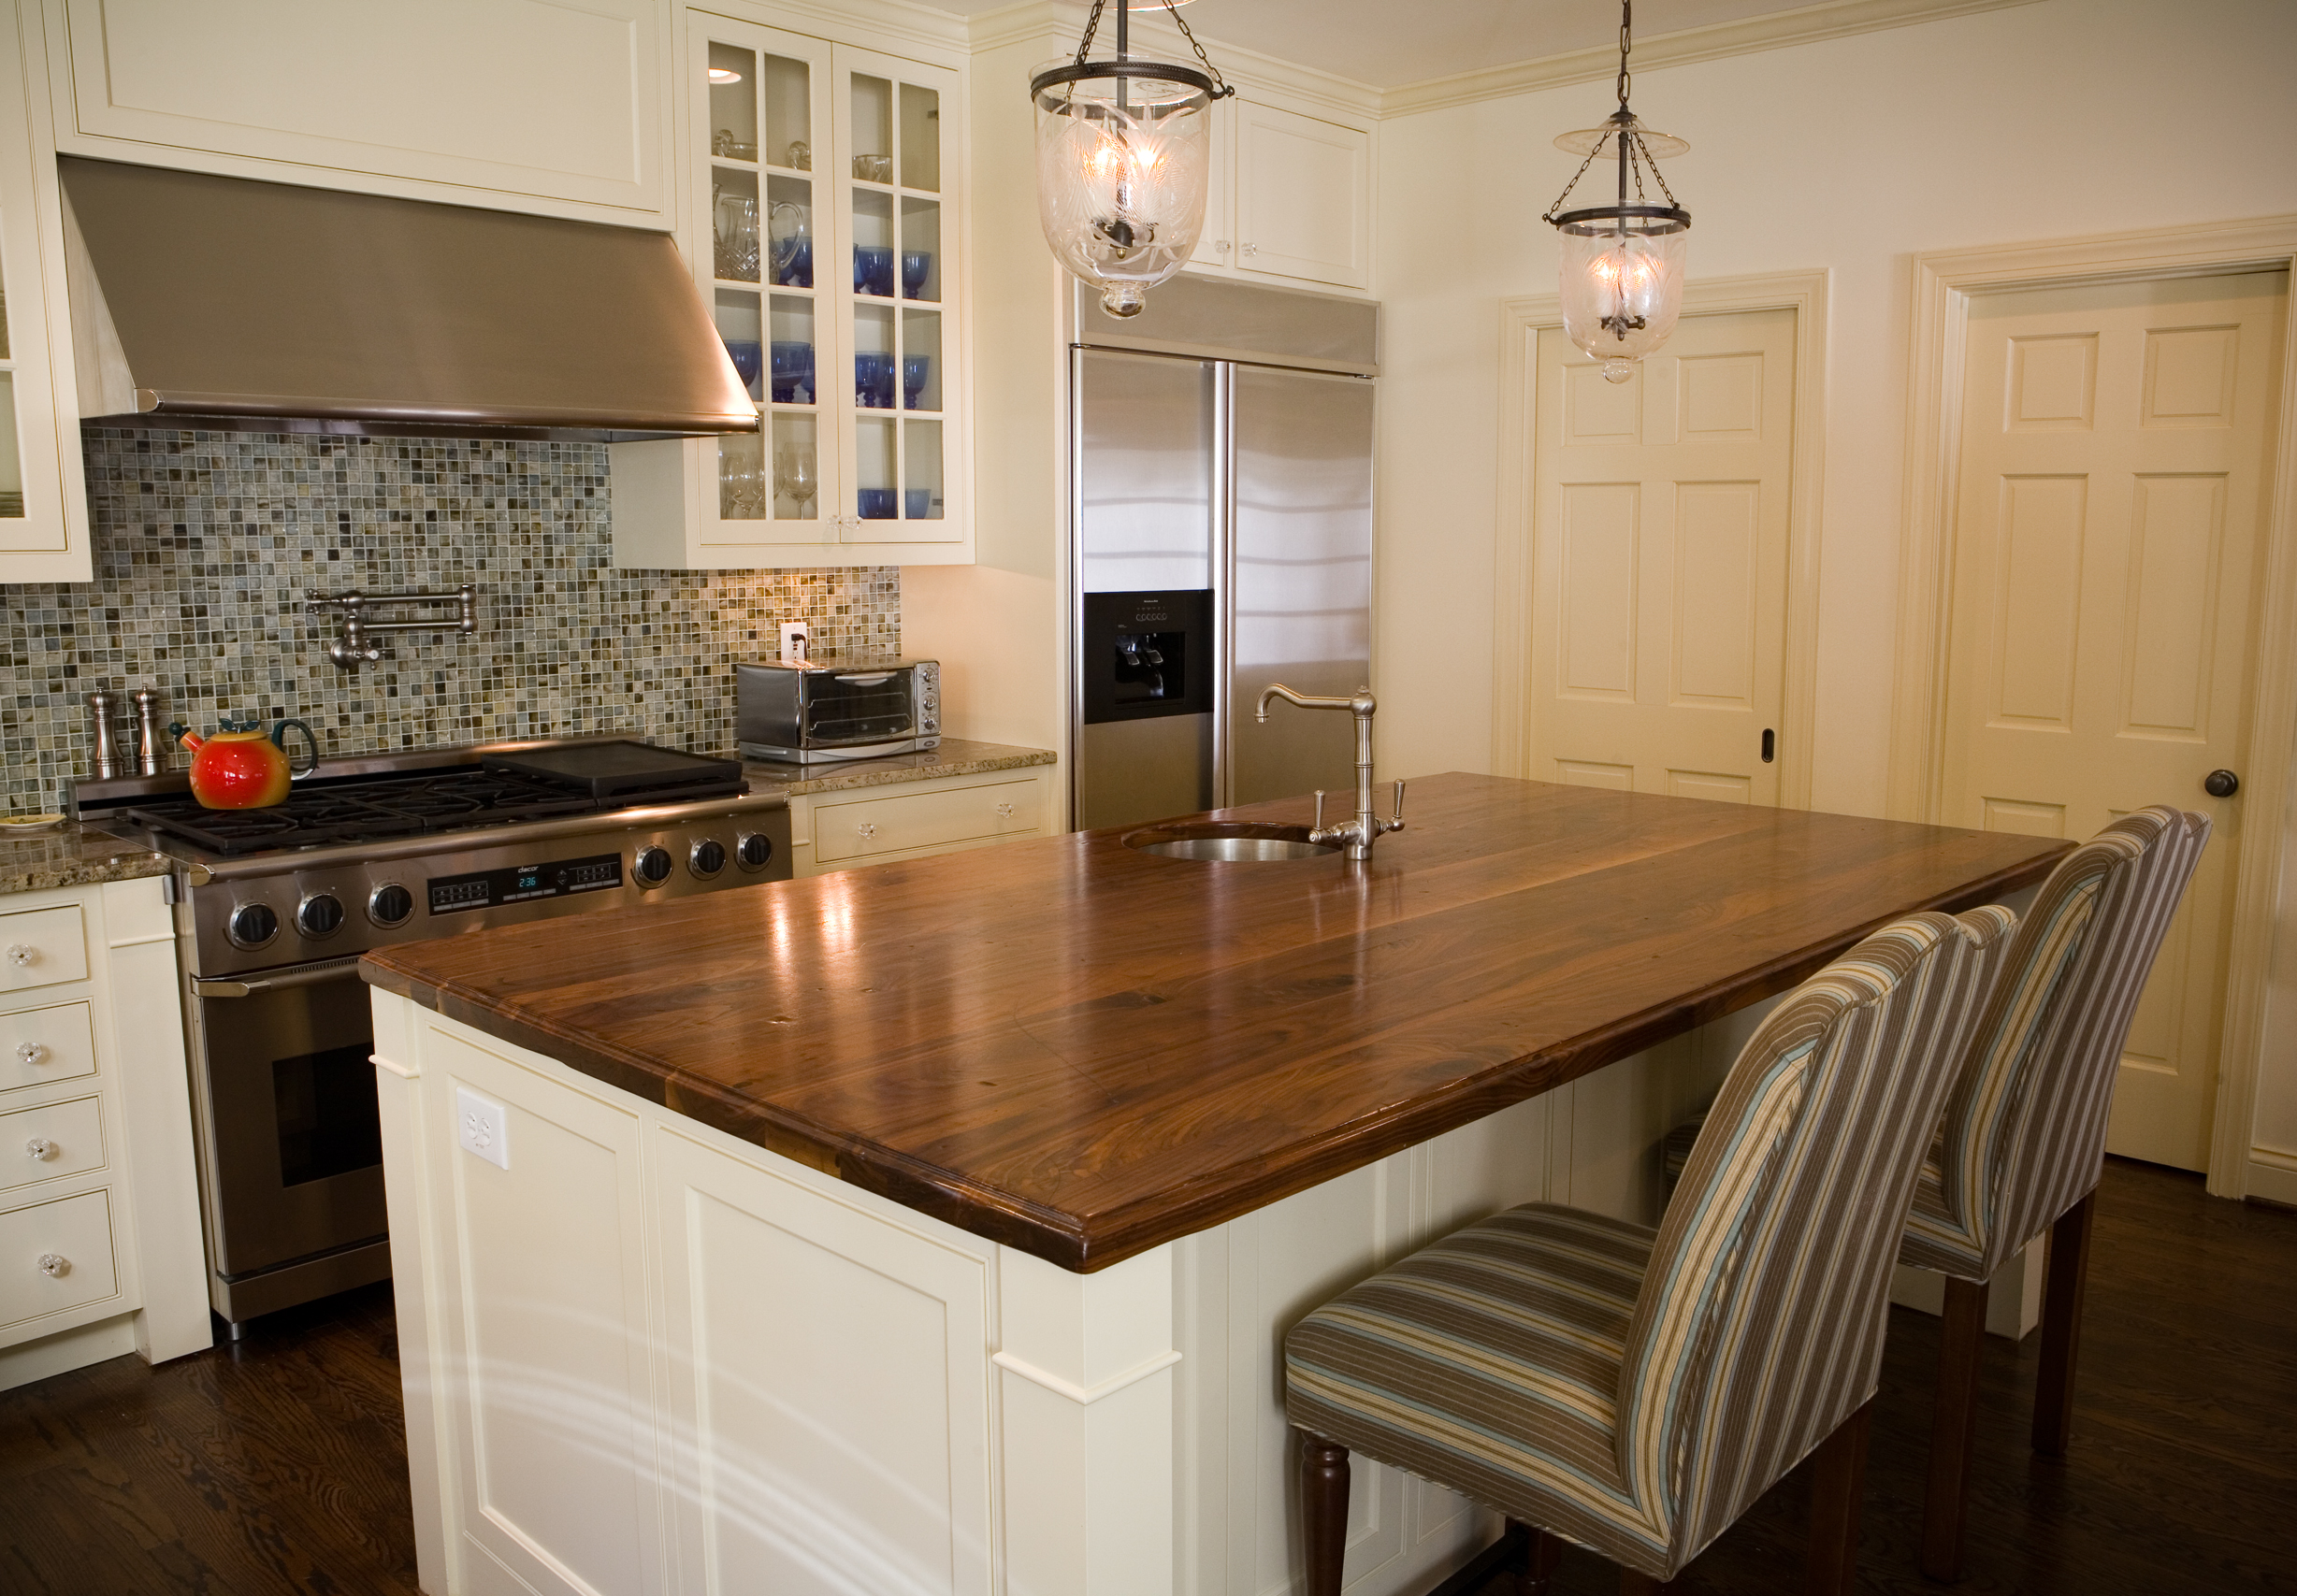 All About Wood Kitchen Countertops You Have To Know